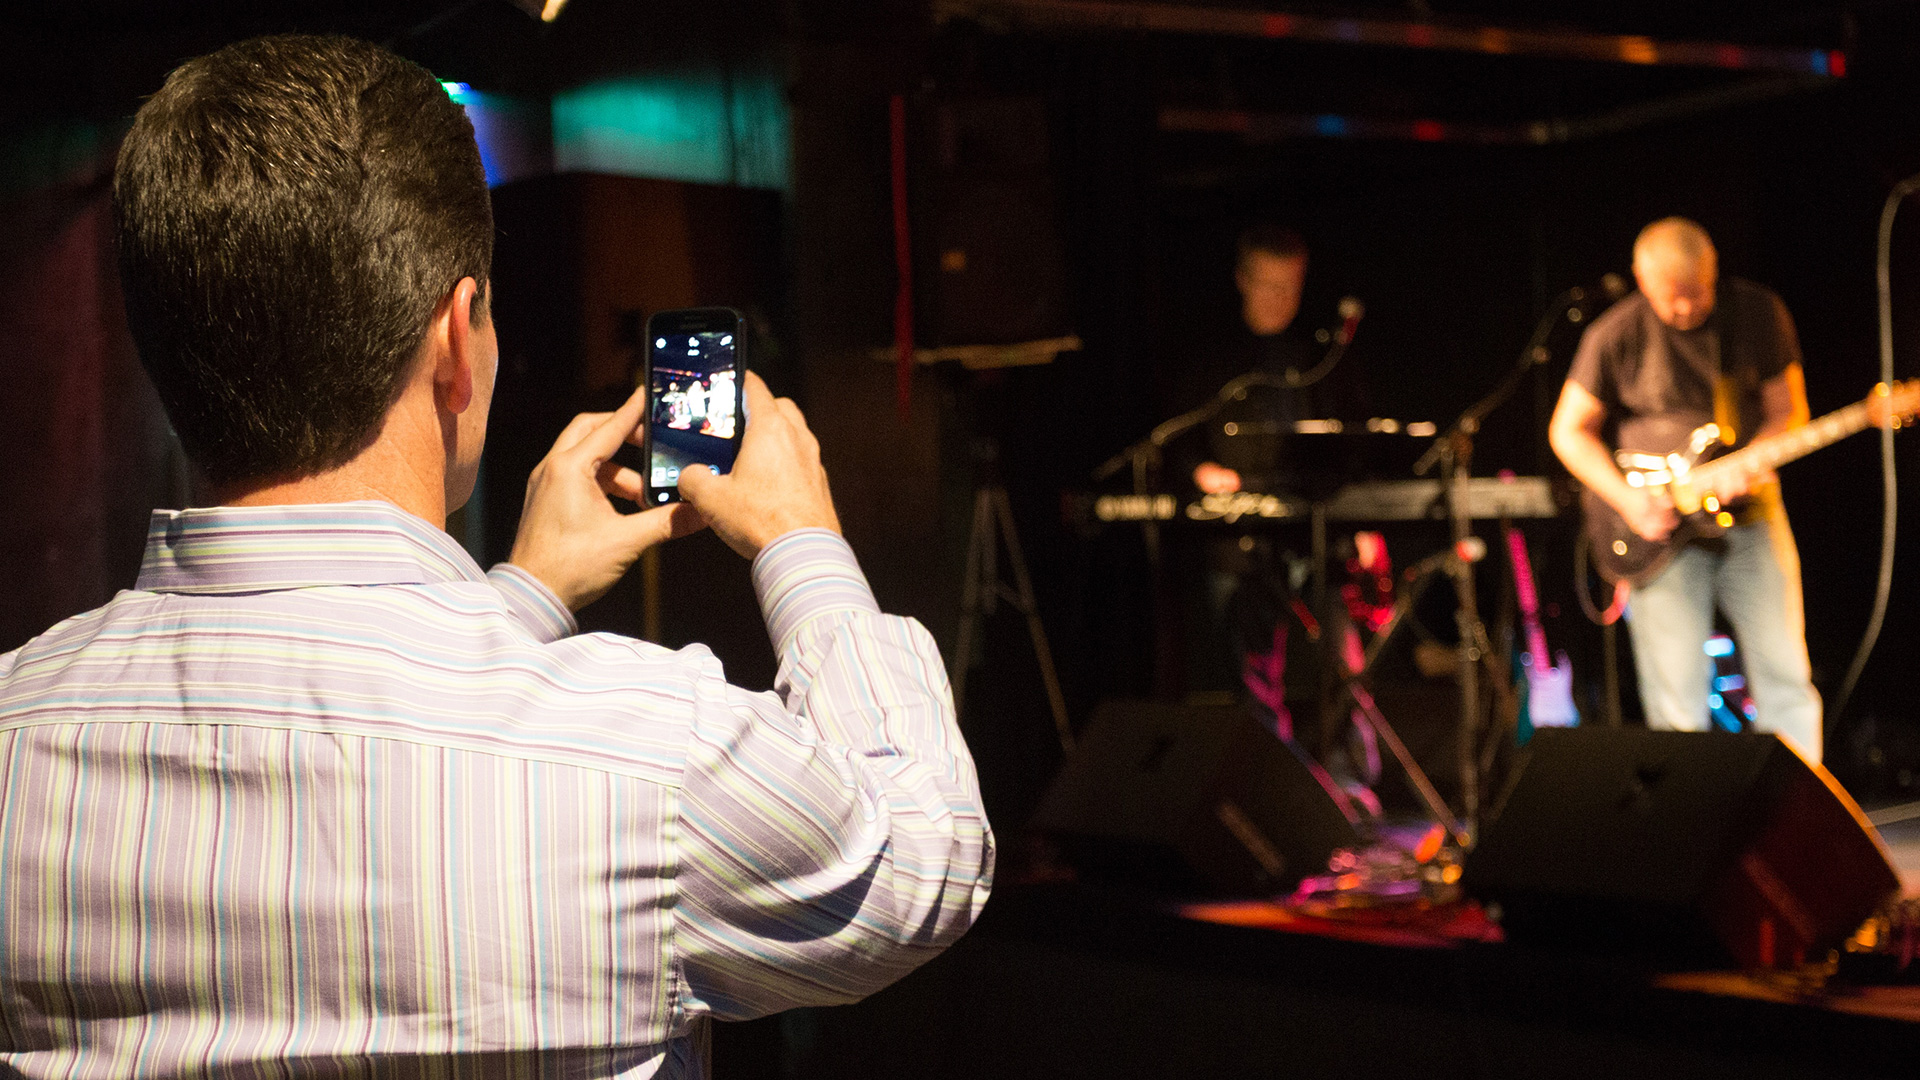 A man films a concert on his smartphone.